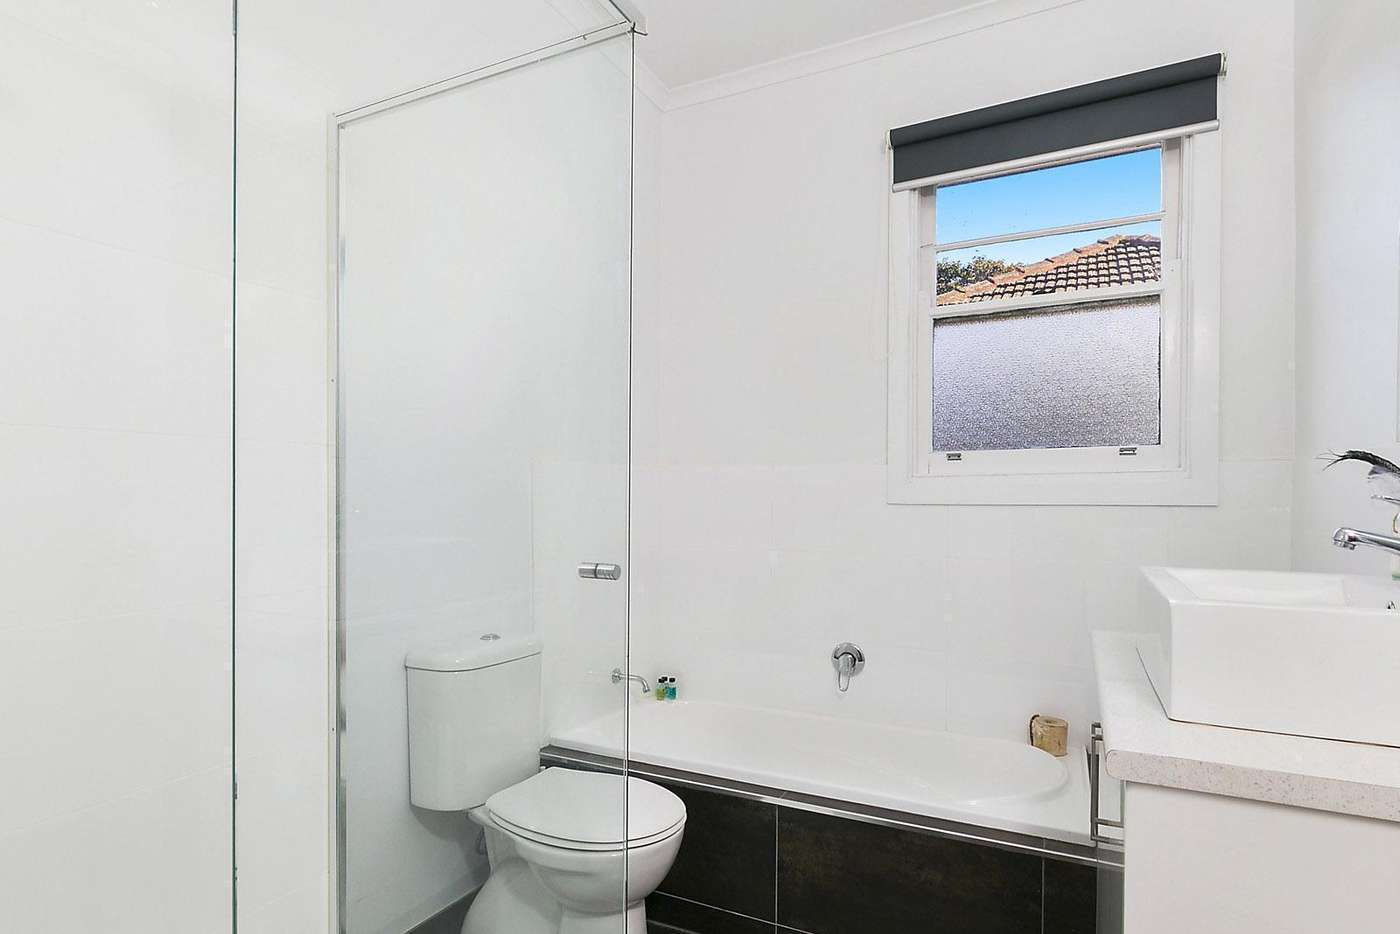 Sixth view of Homely house listing, 23 Logan Street, Hamlyn Heights VIC 3215